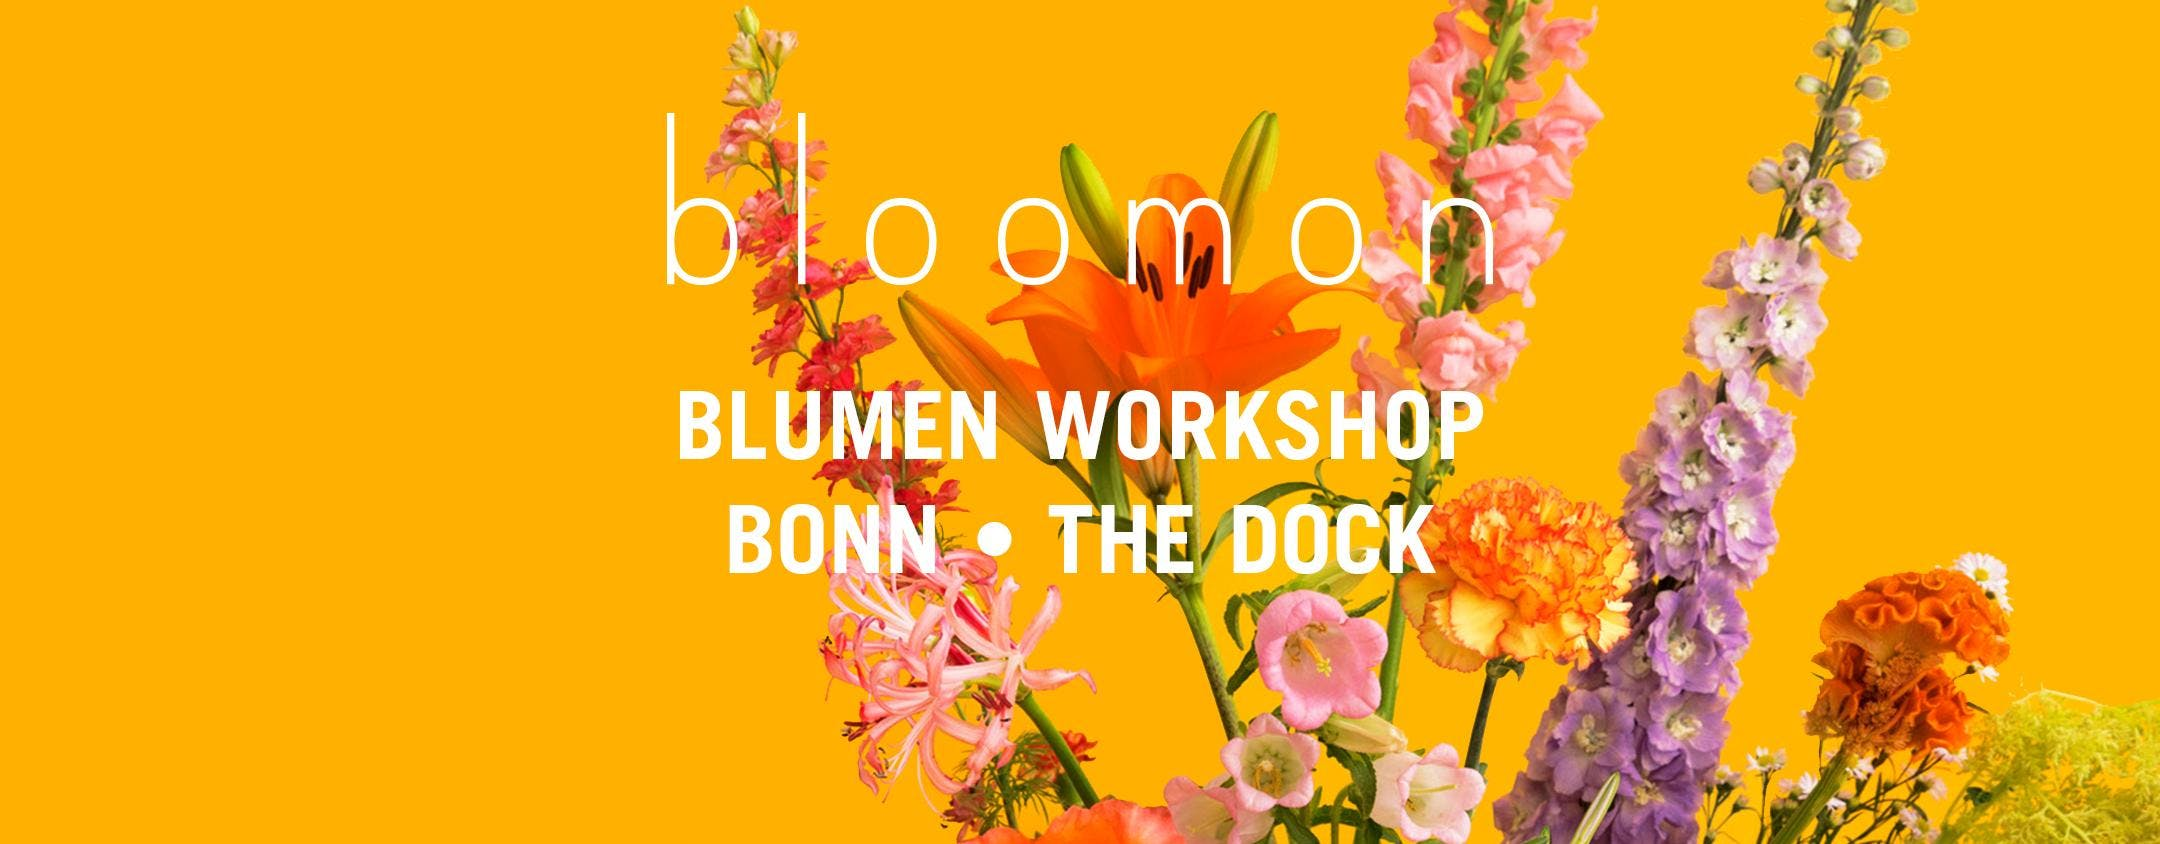 bloomon Workshop 16. August | Bonn, The Dock